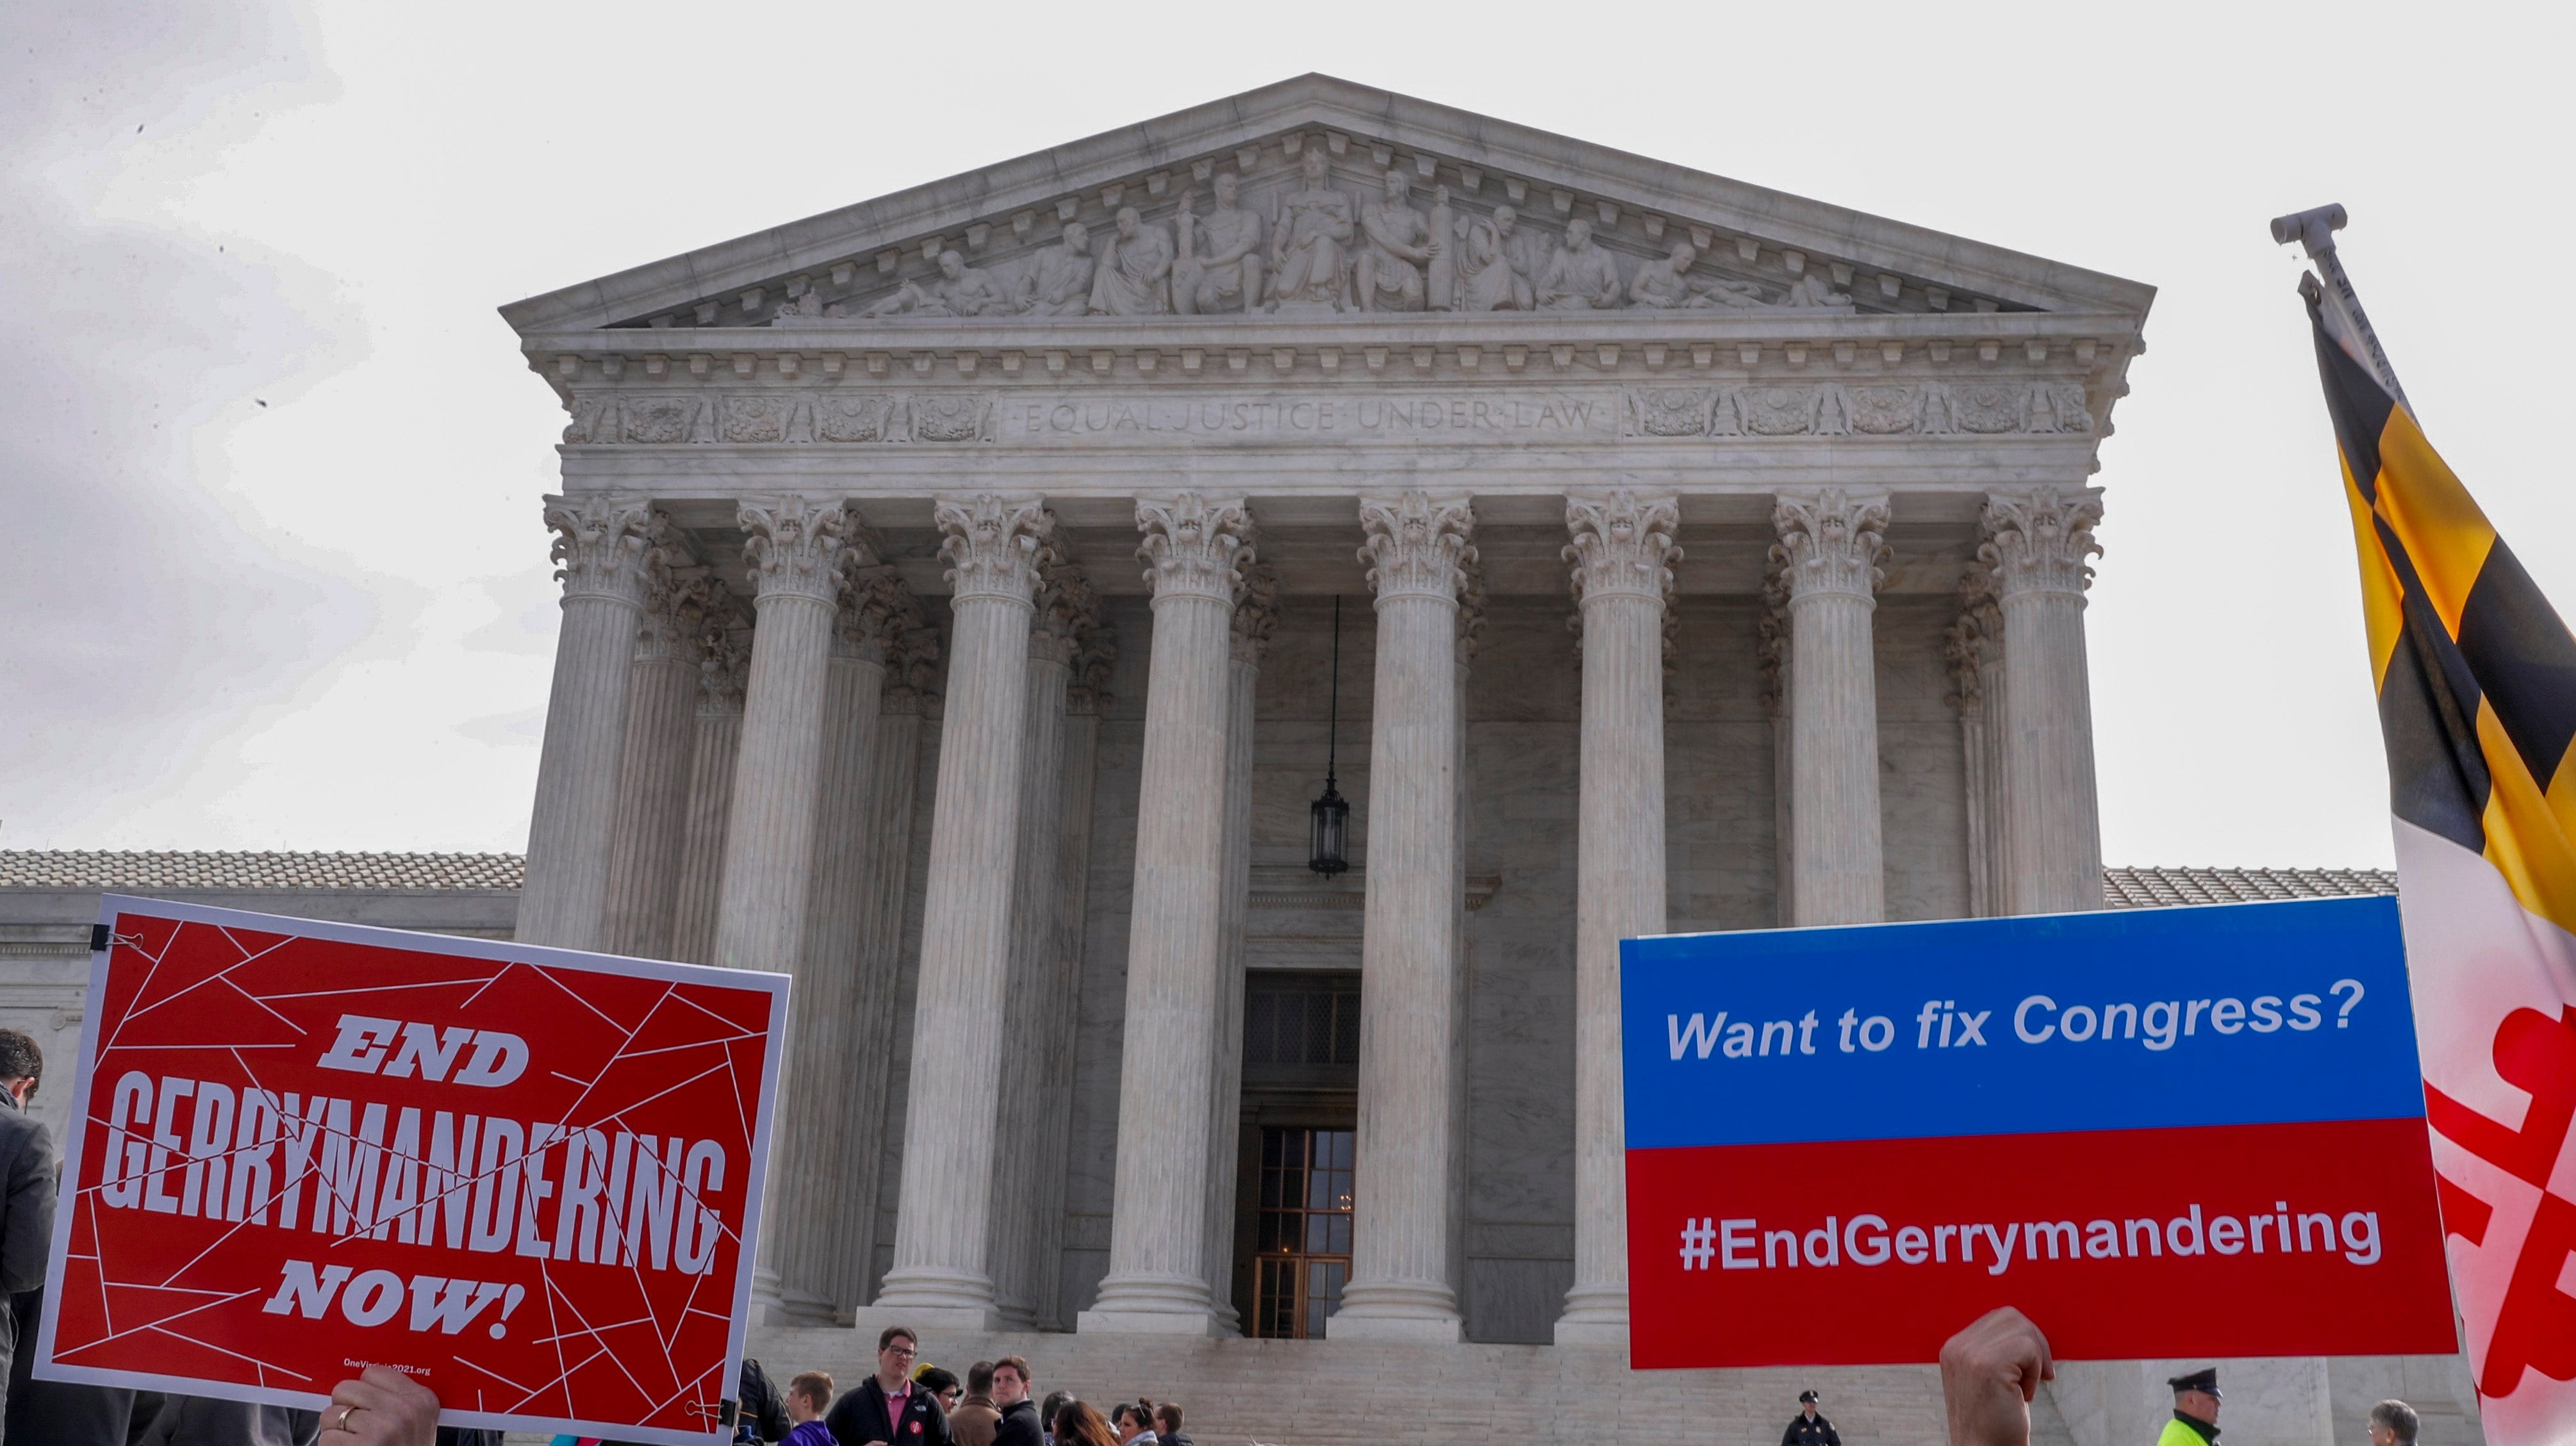 Protesters outside the Supreme Court in 2018 failed to convince the justices to end partisan gerrymandering, but the issue is back.